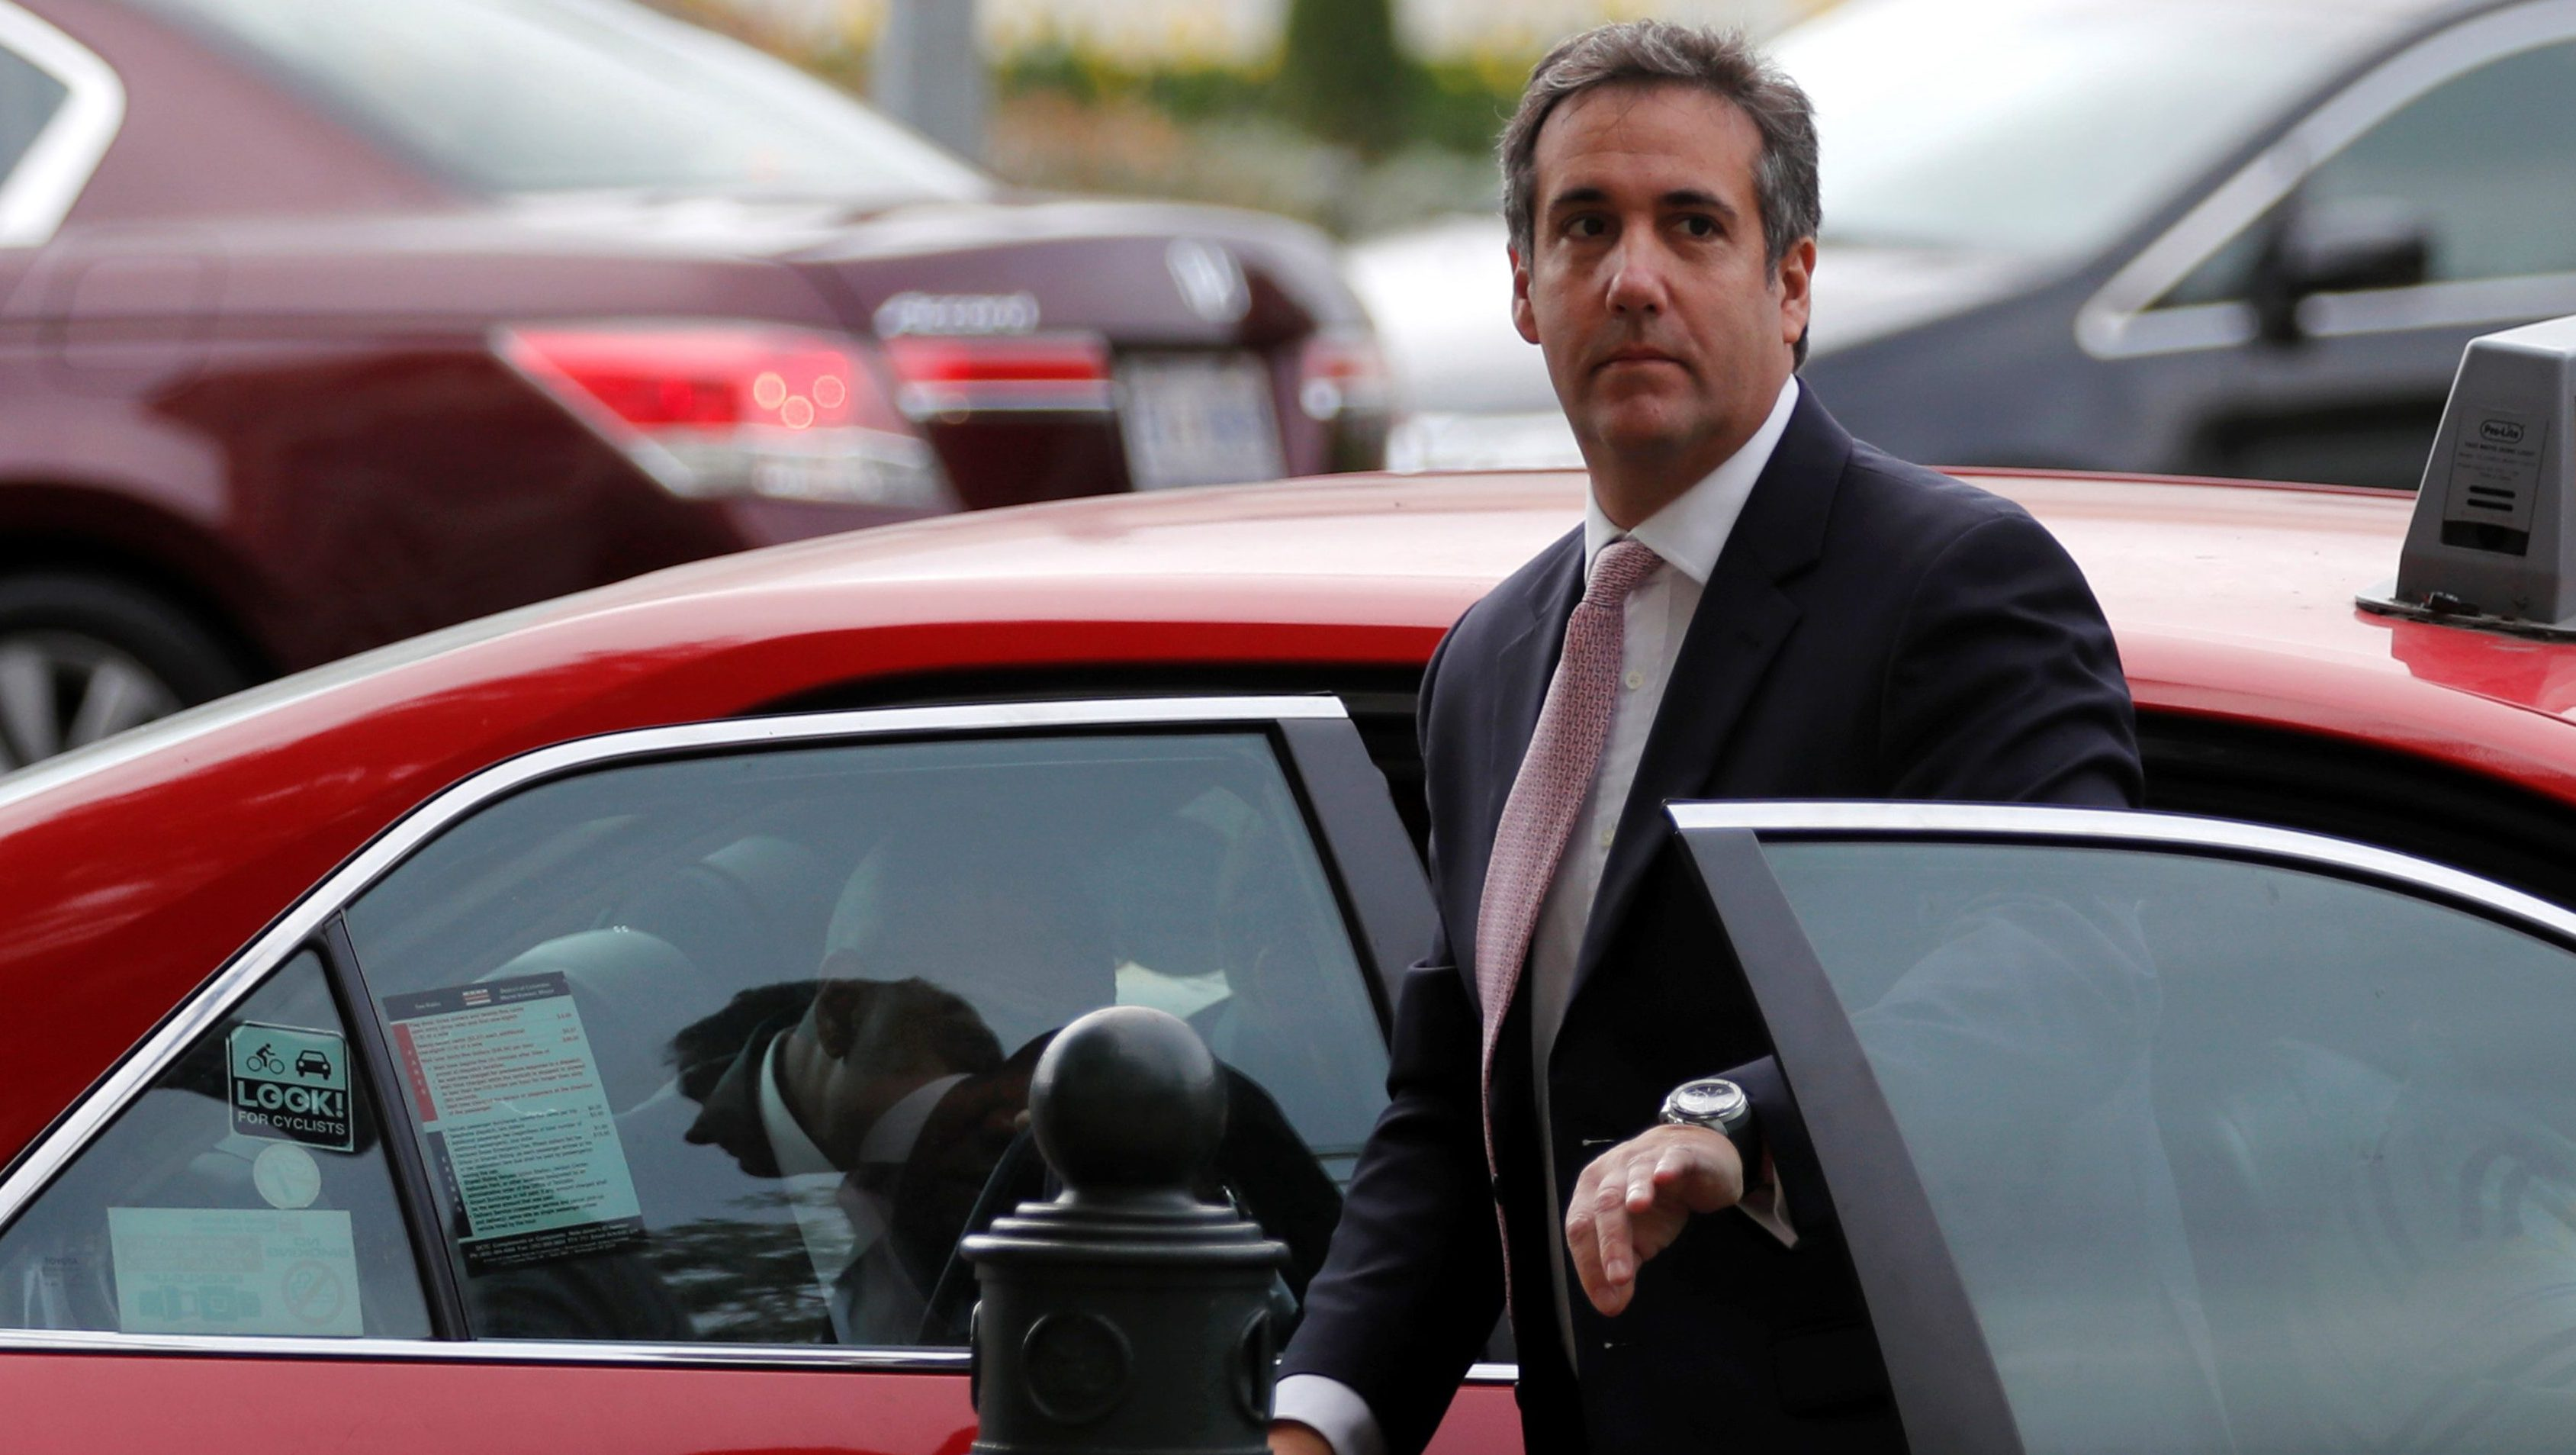 Michael Cohen, personal attorney for U.S. President Donald Trump, arrives to appear before Senate Intelligence Committee staff as the panel investigates alleged Russian interference in the 2016 U.S. presidential election, on Capitol Hill in Washington, U.S. September 19, 2017. REUTERS/Jonathan Ernst - RC1A228BE180